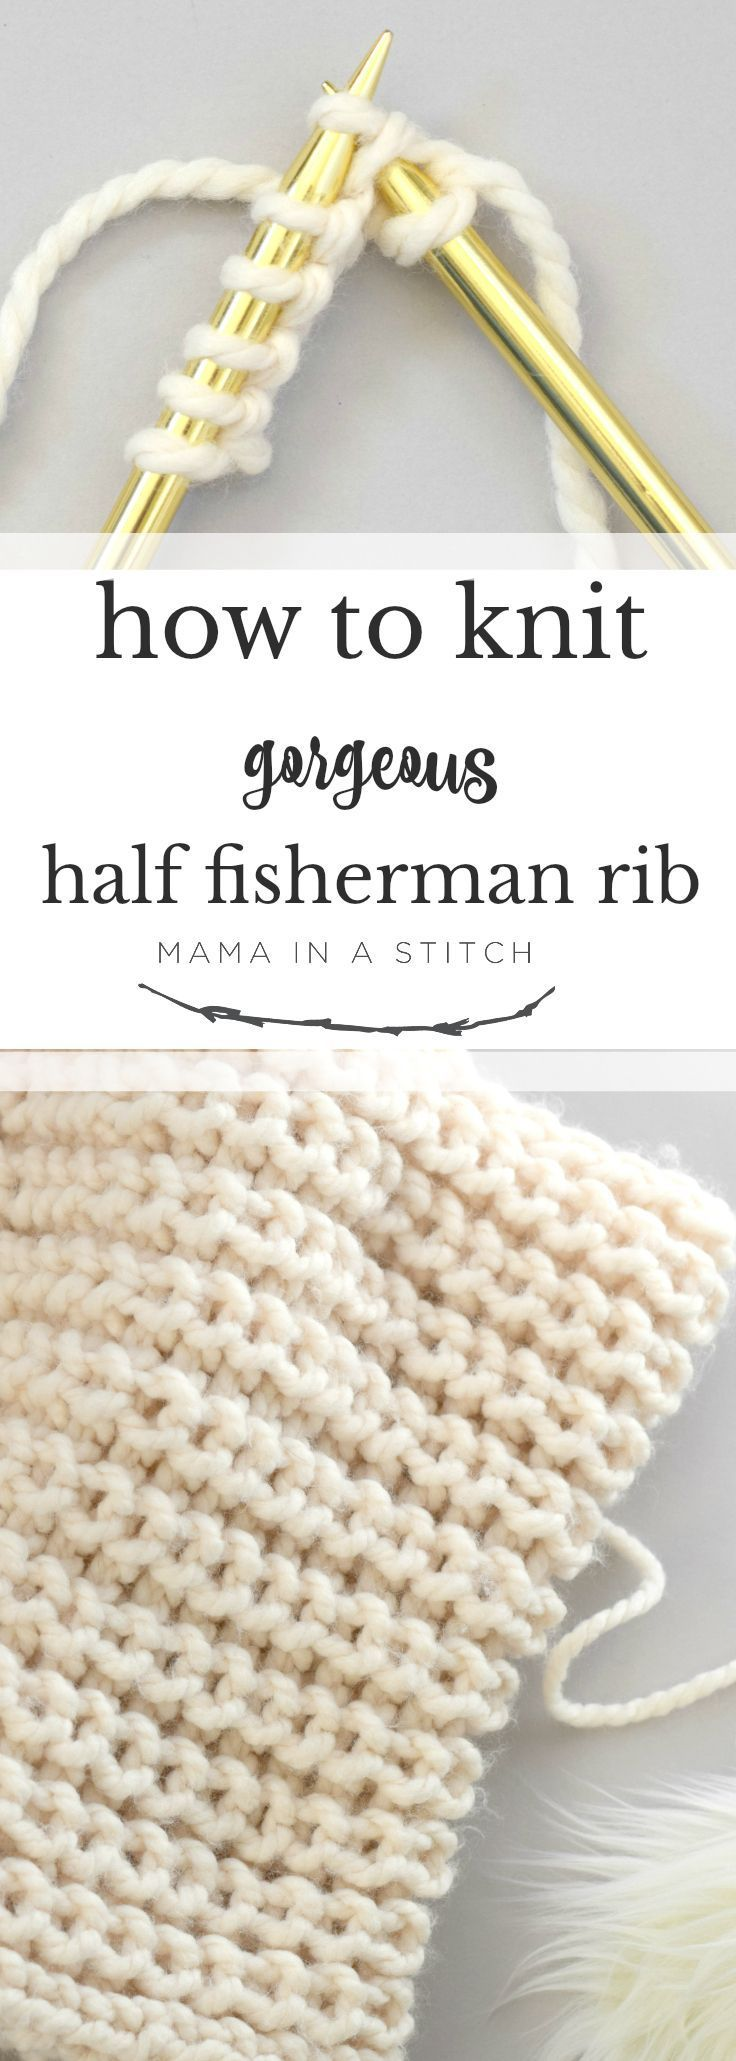 262 best Knitting for Home images on Pinterest | Knit stitches ...